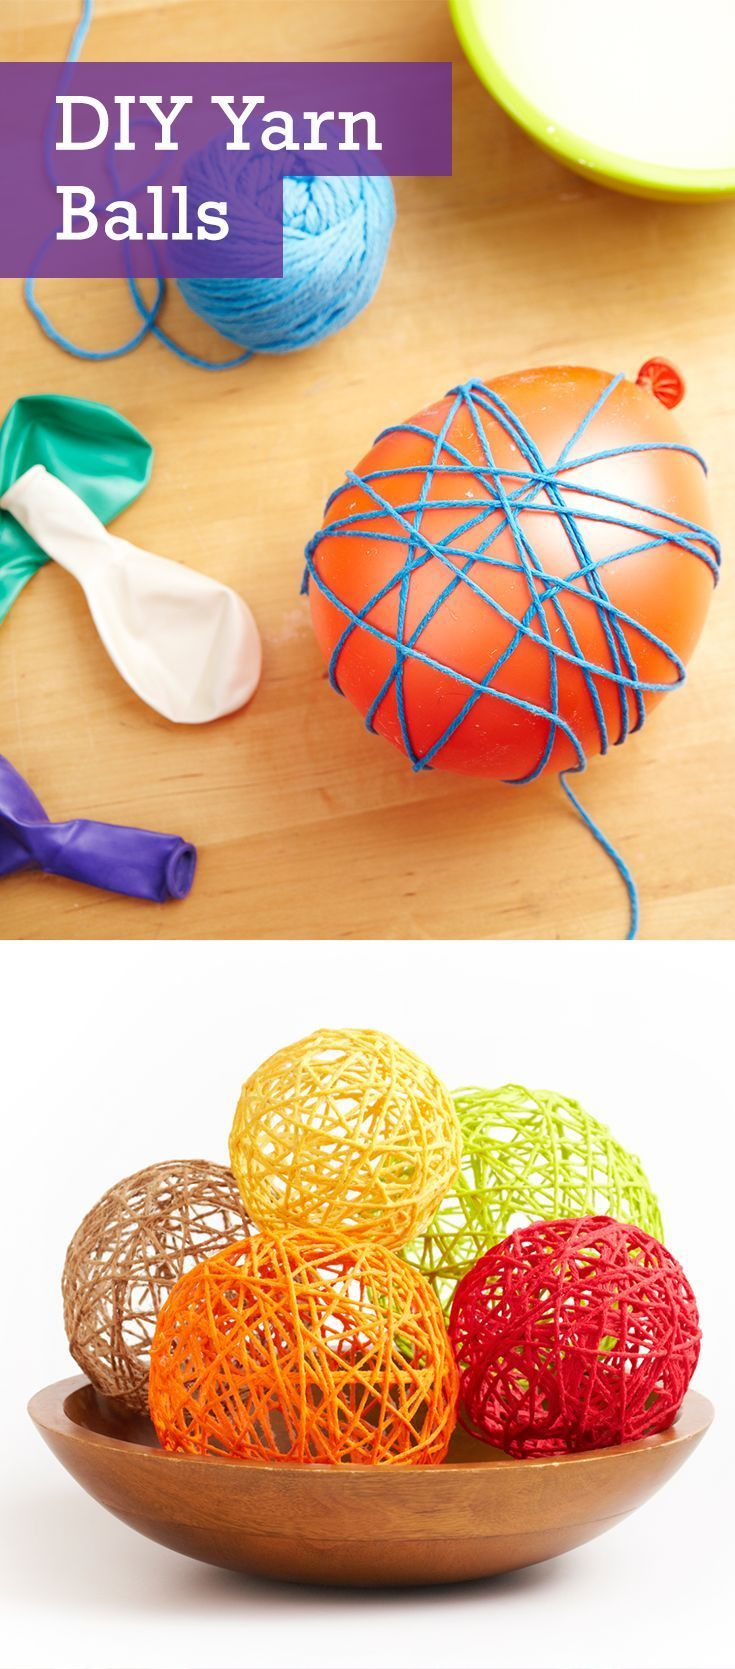 Fun With Yarn Crafts Ideas Kid Crafts Pinterest Homemade